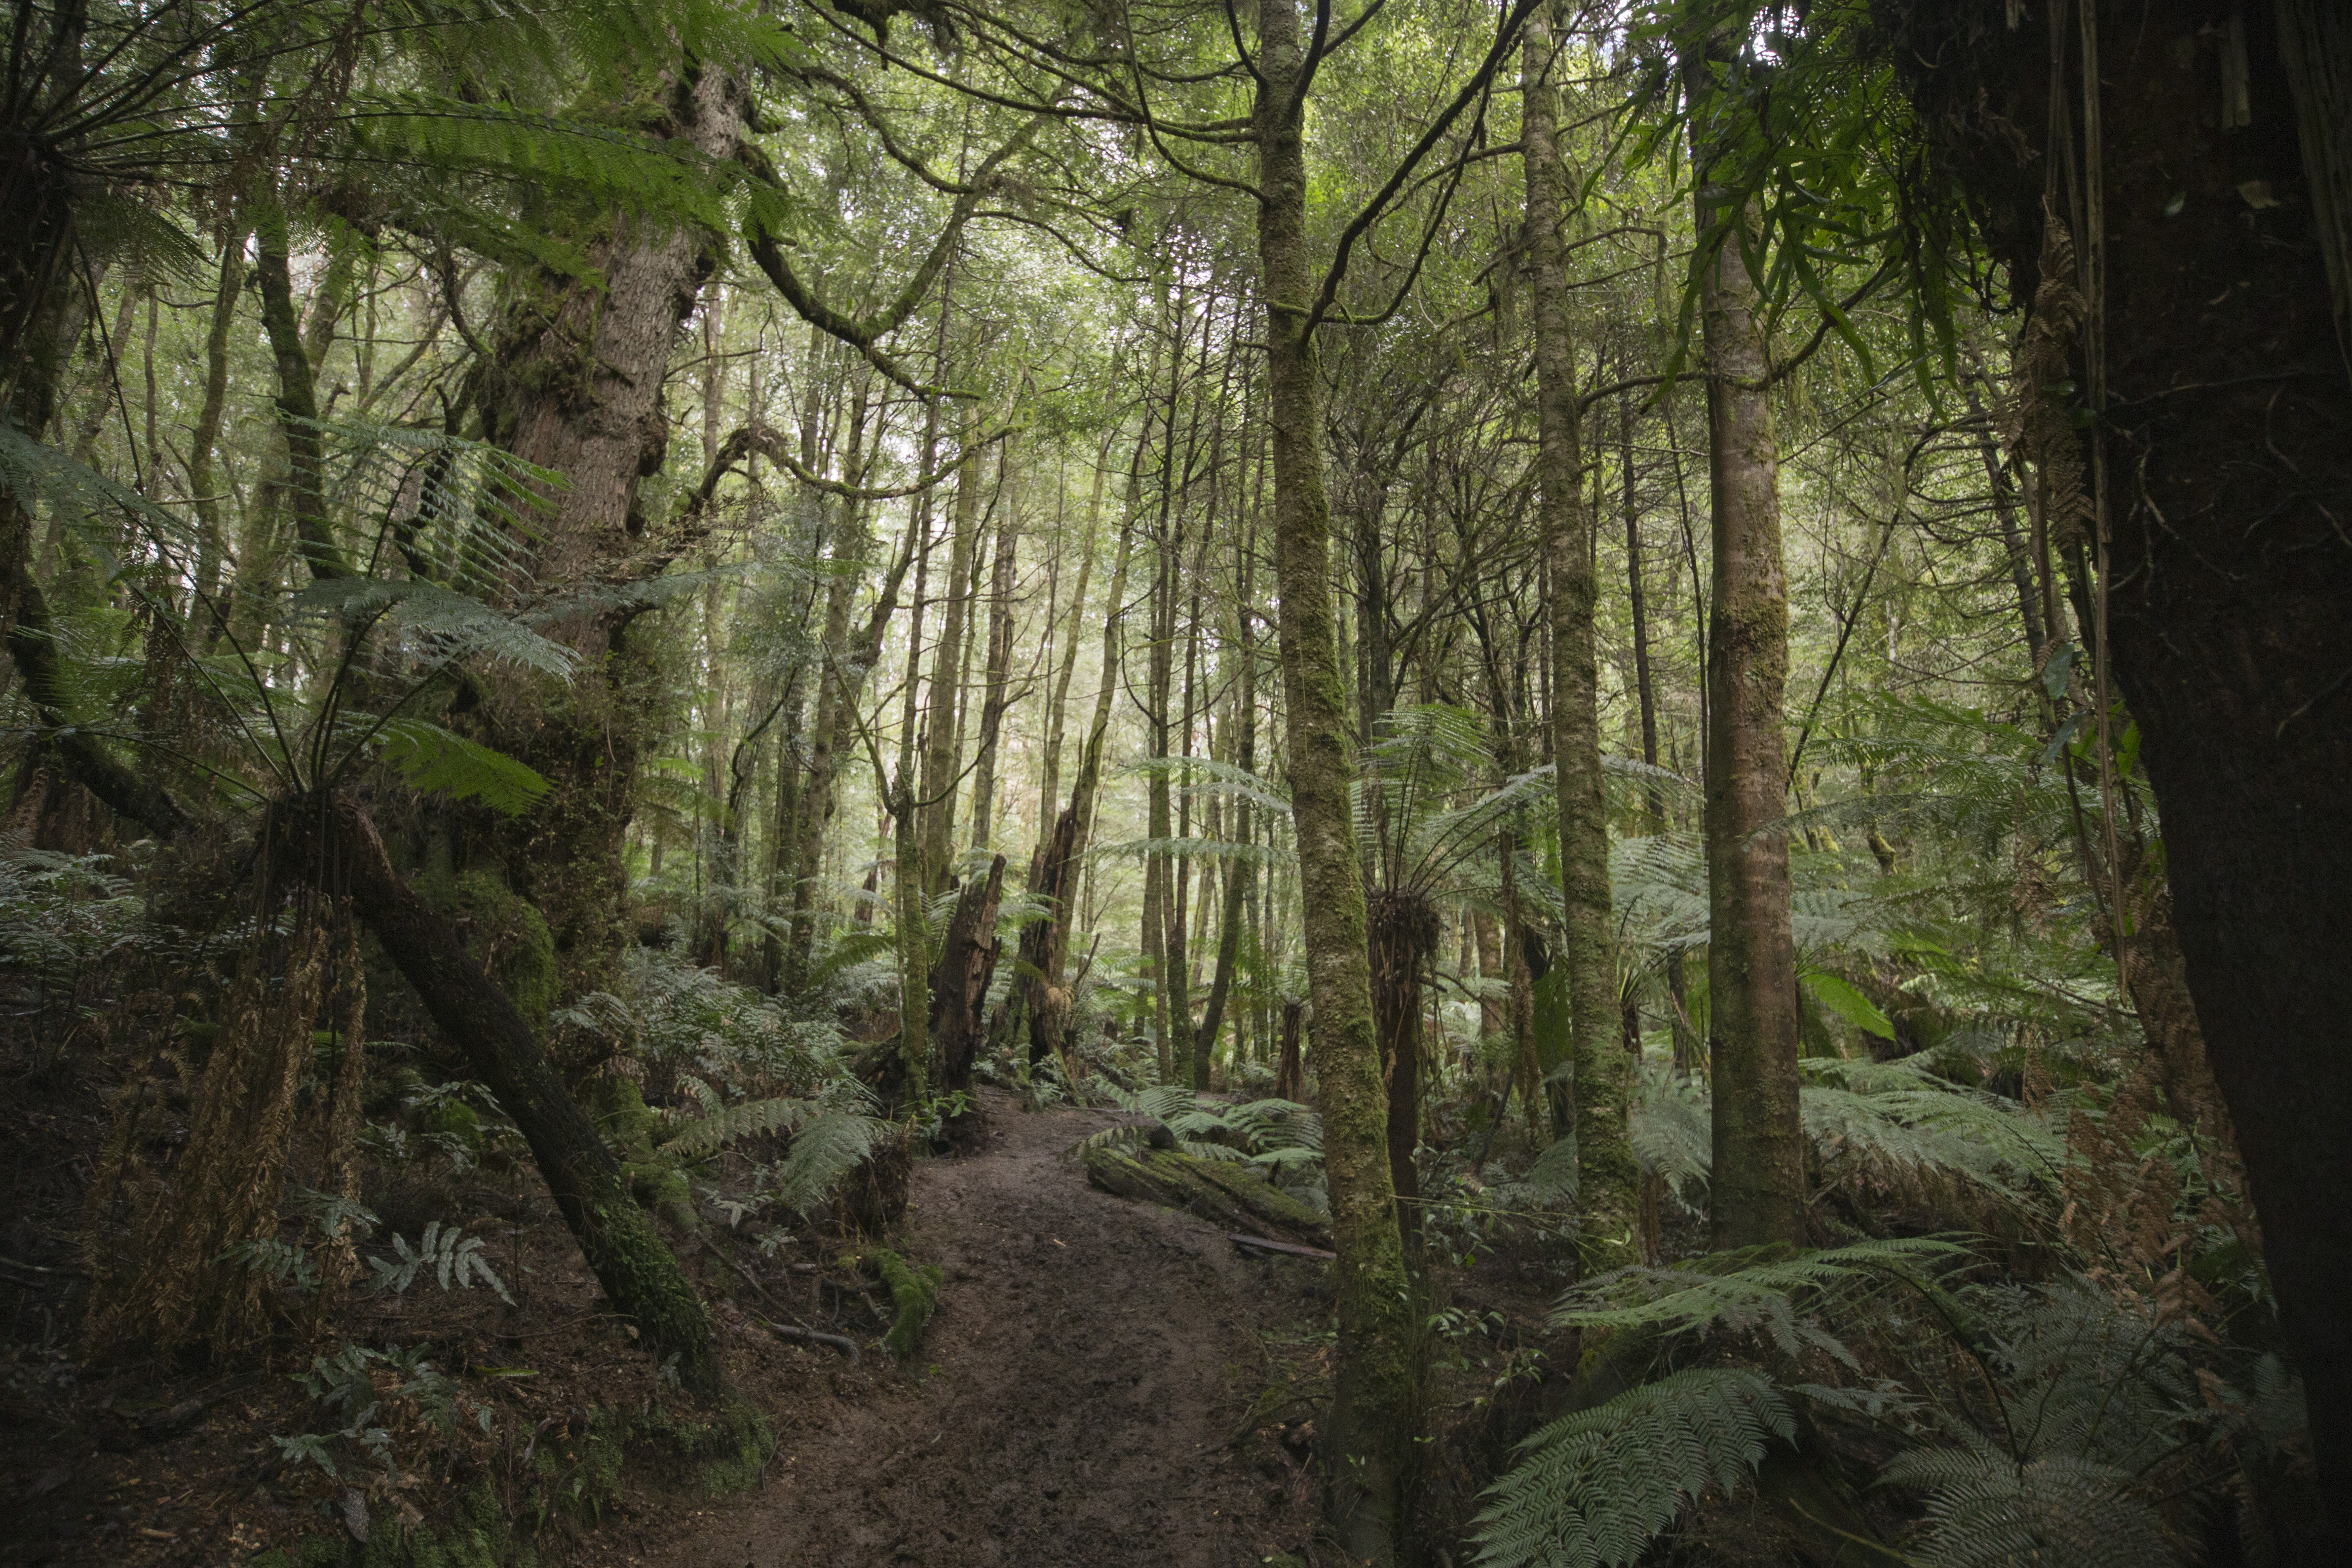 A walk in the pluvial forest of the Yarra Ranges National Park